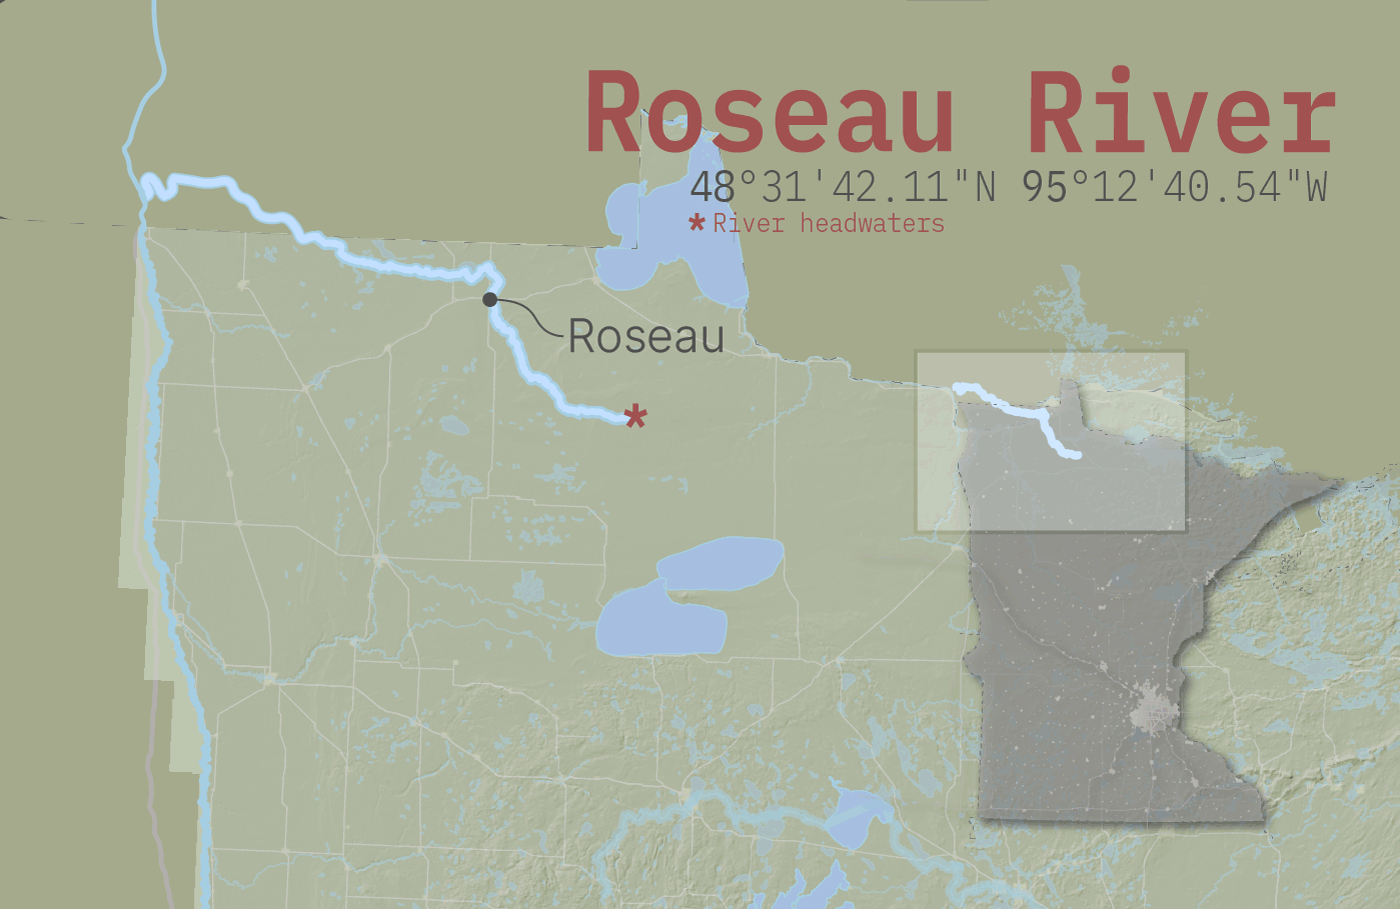 Roseau River flowing north into the Red River of the North